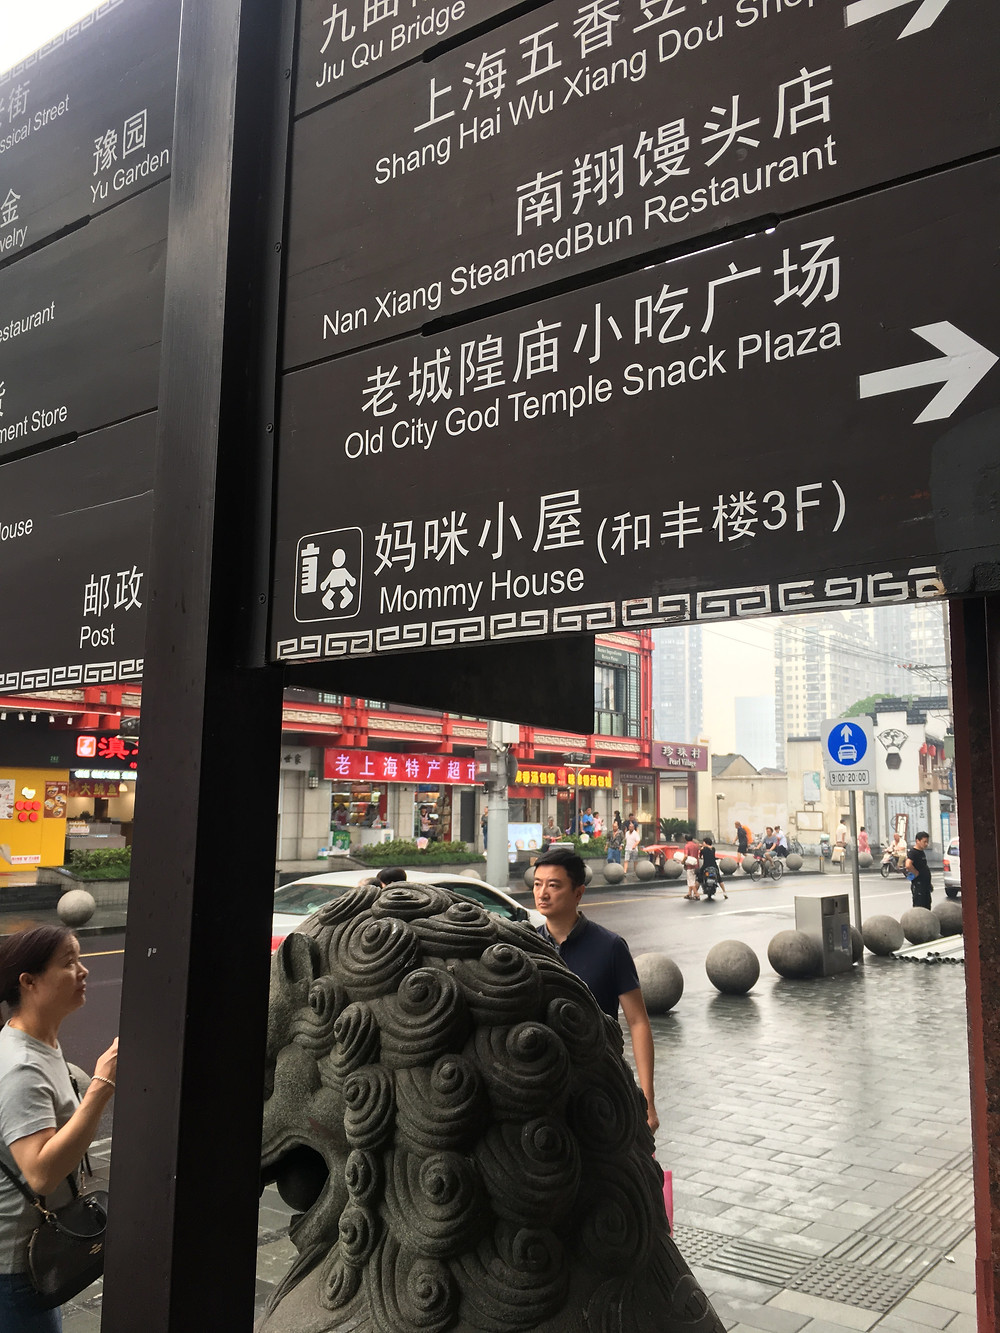 strange signs in Shanghai china